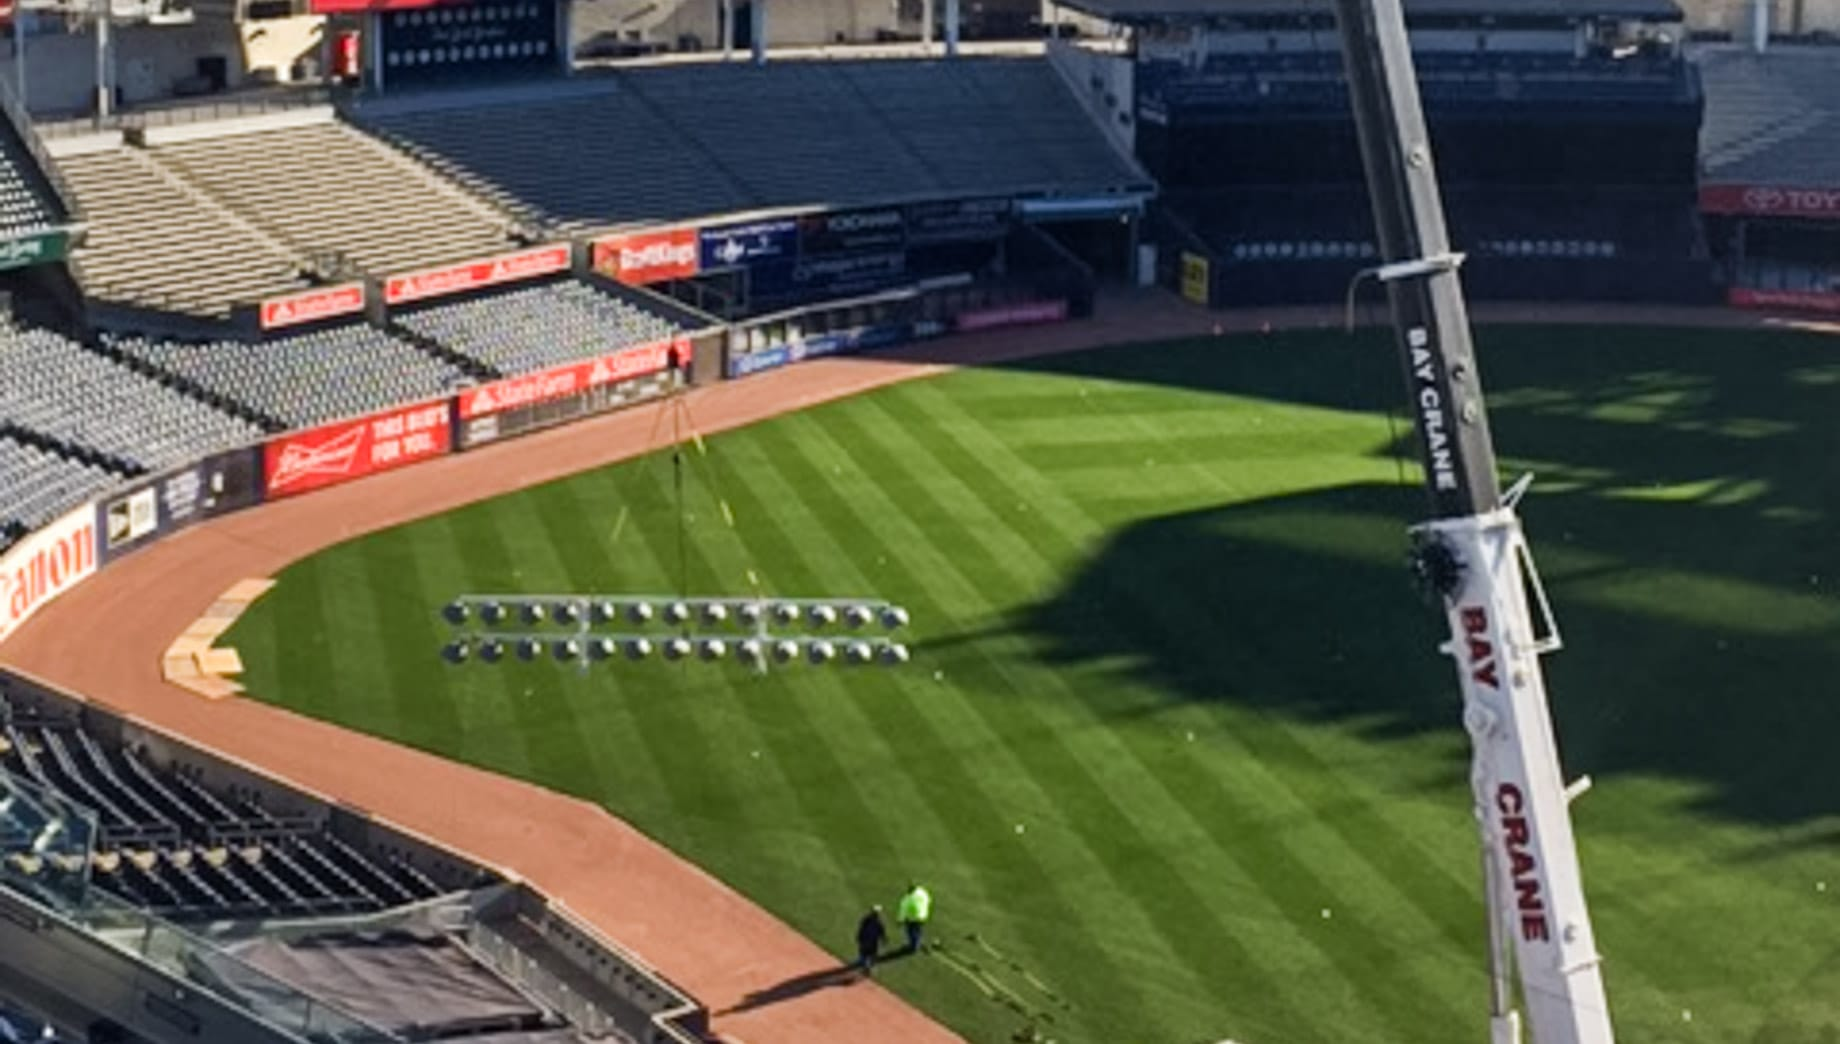 Crane lifting lights in Yankee Stadium